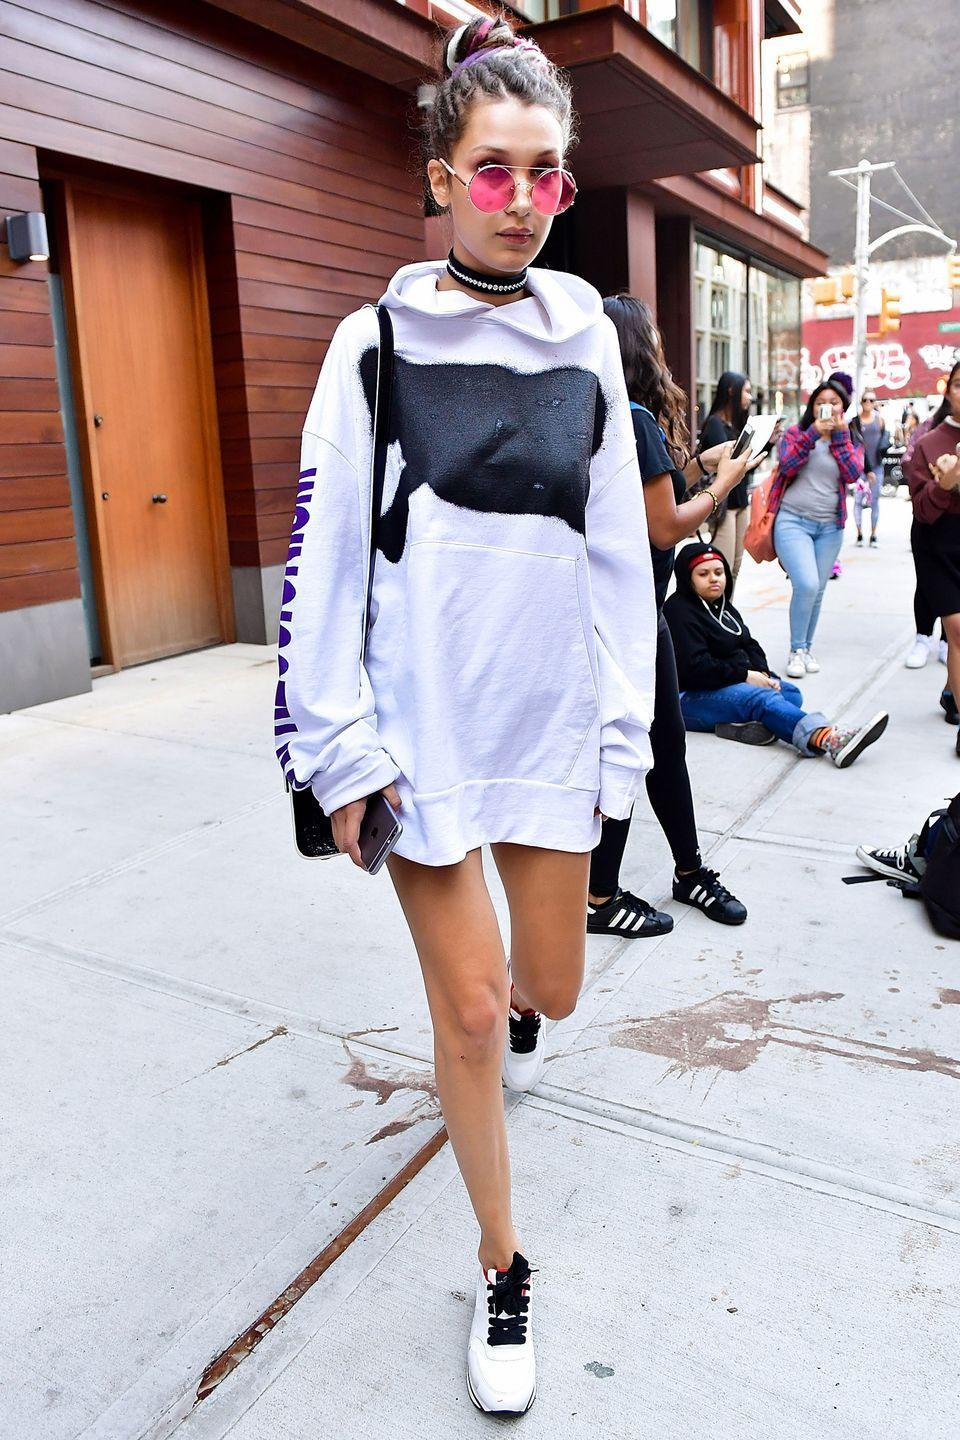 <p>In oversized hooded sweater, choker necklace, statement sunglasses and sneakers on the streets of Manhattan.</p>